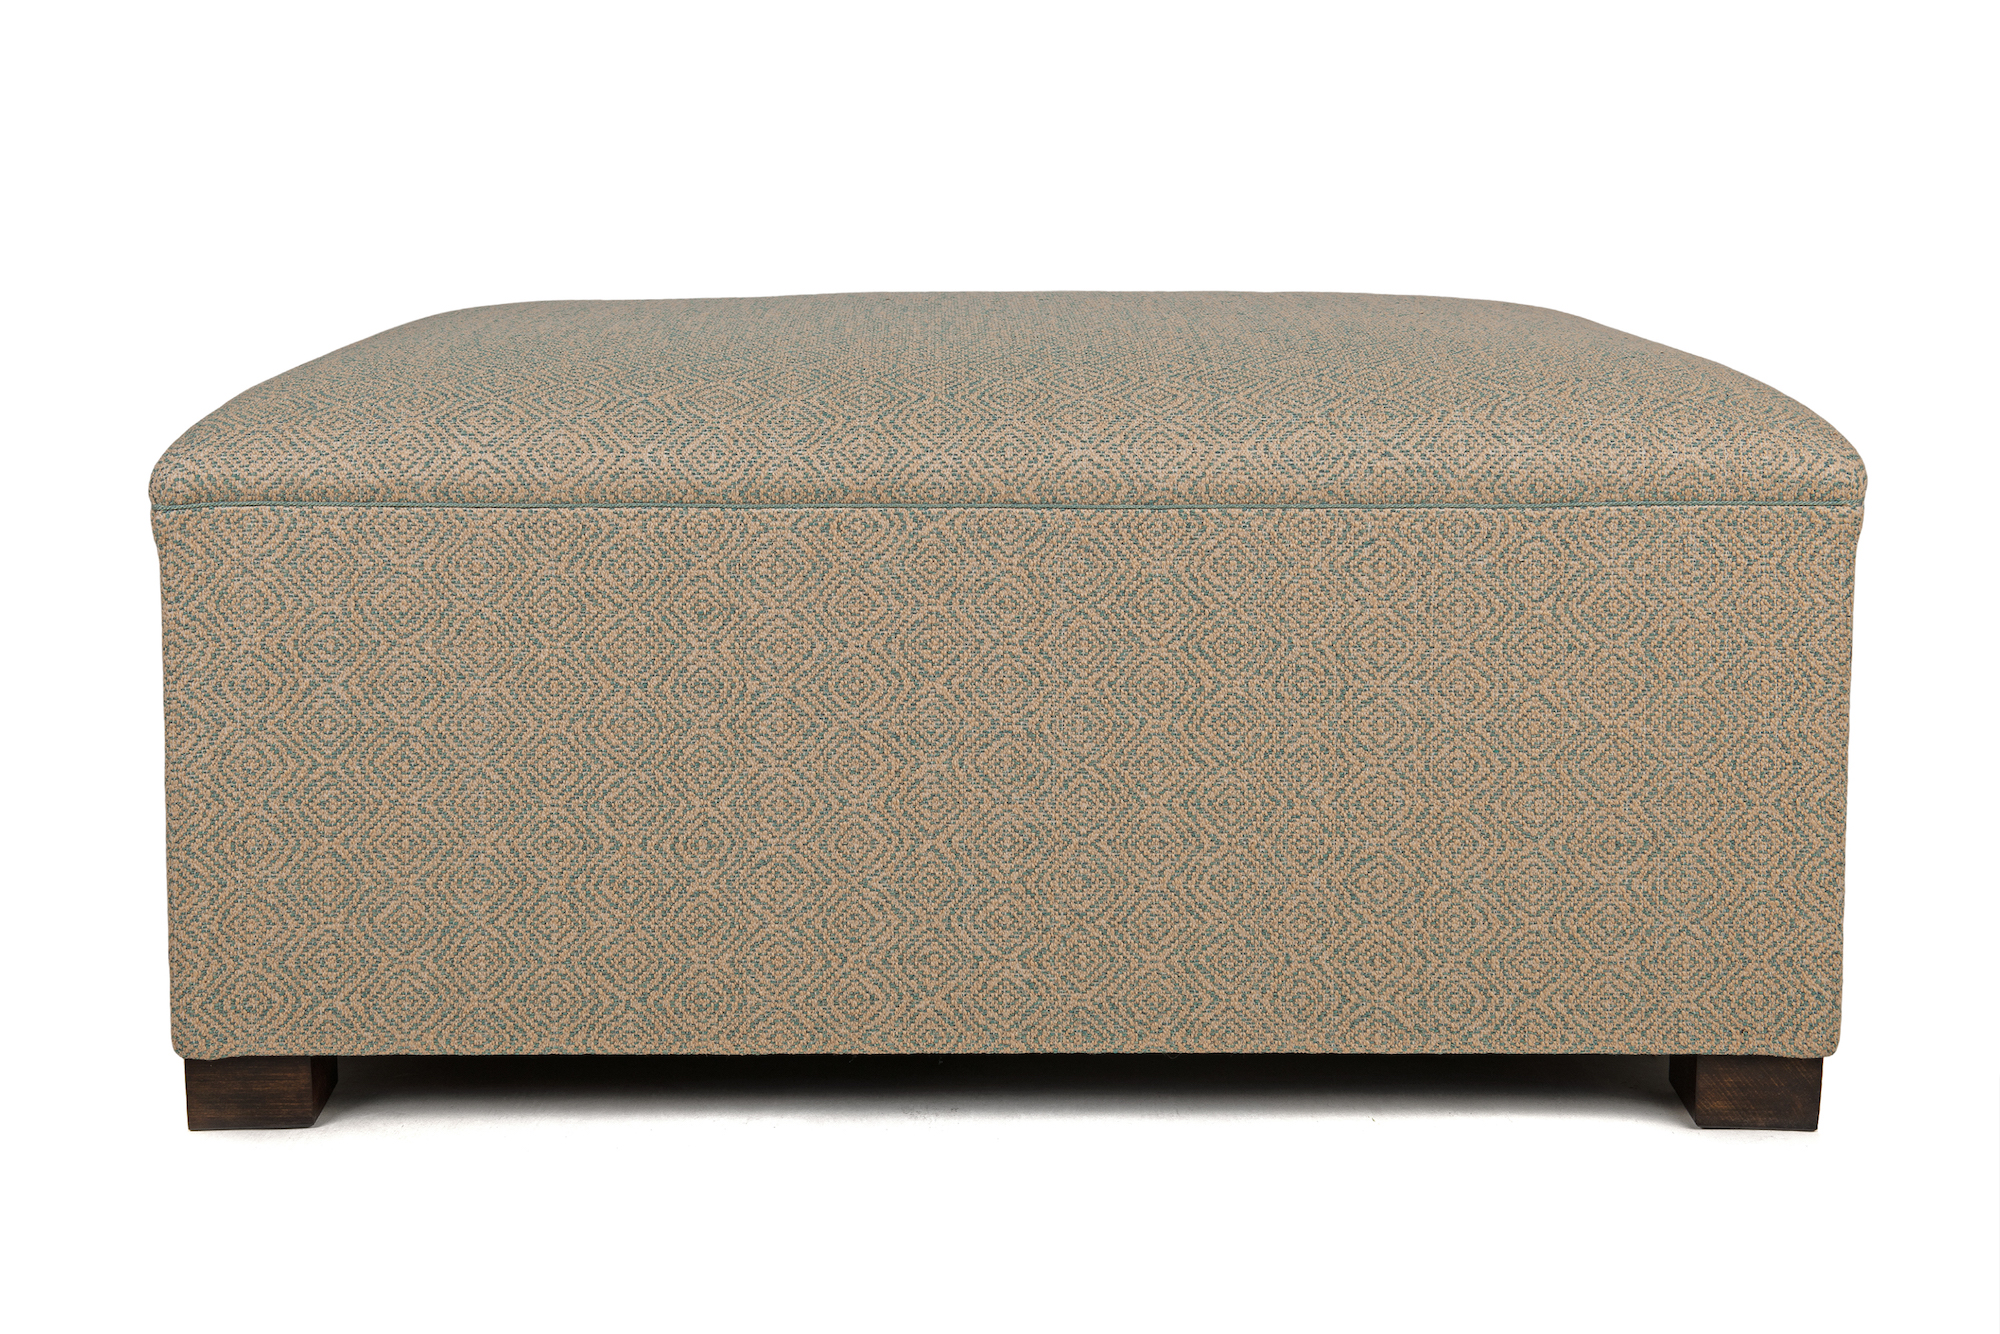 Deep Bordered Slender Roll Top Ottoman with Delicate Piping Trim